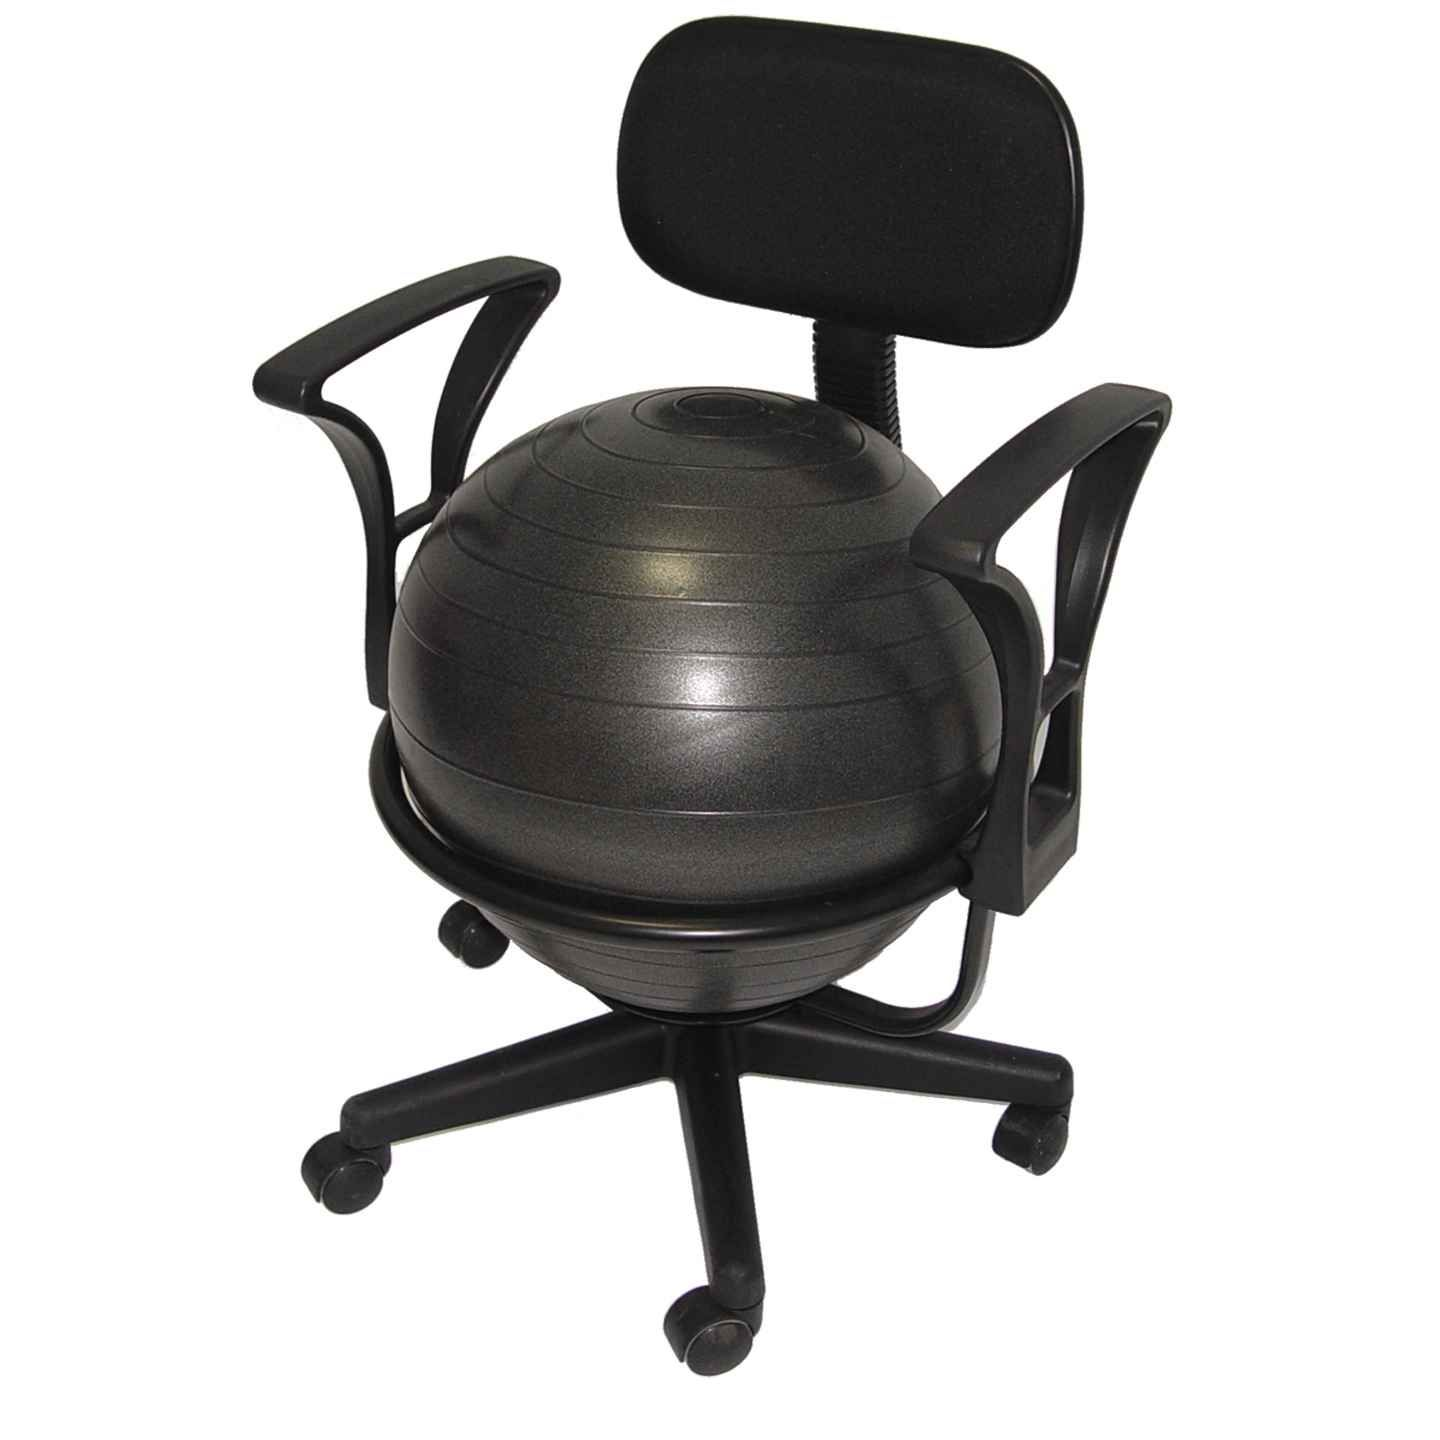 Aeromat deluxe ergonomic ball office chair the aeromat deluxe ergonomic ball office chair is an innovative new product that provides an excellent